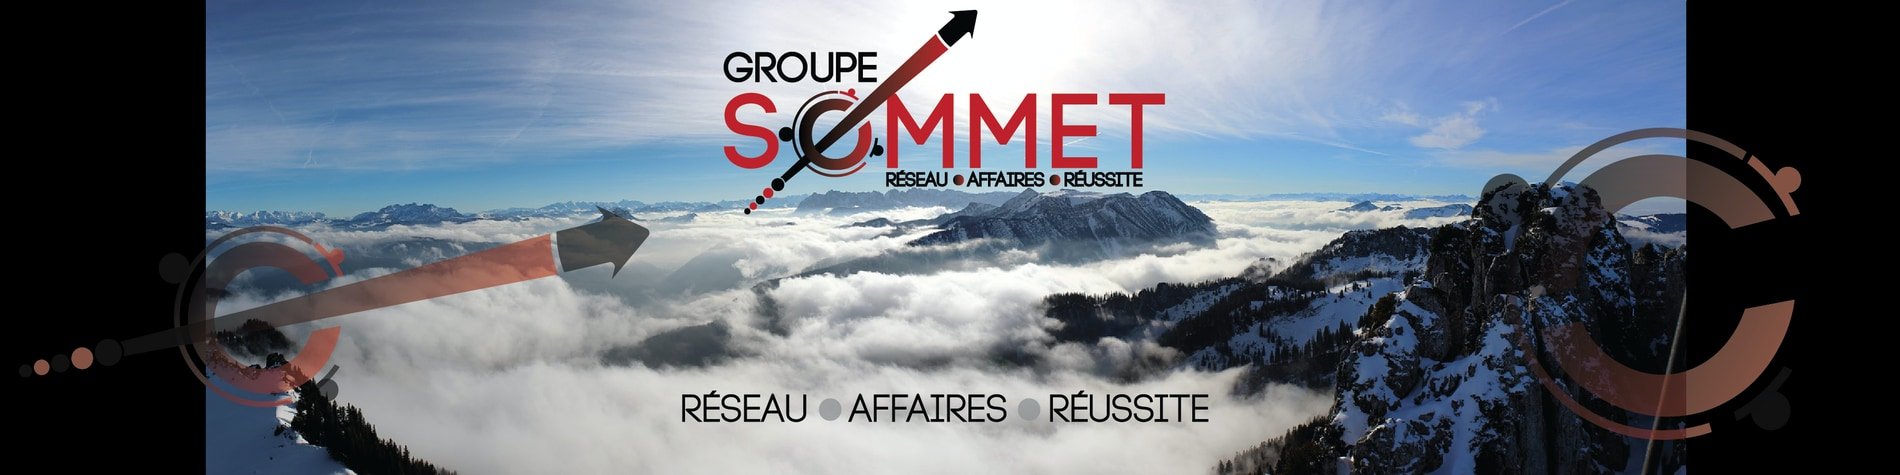 Le Groupe Sommet